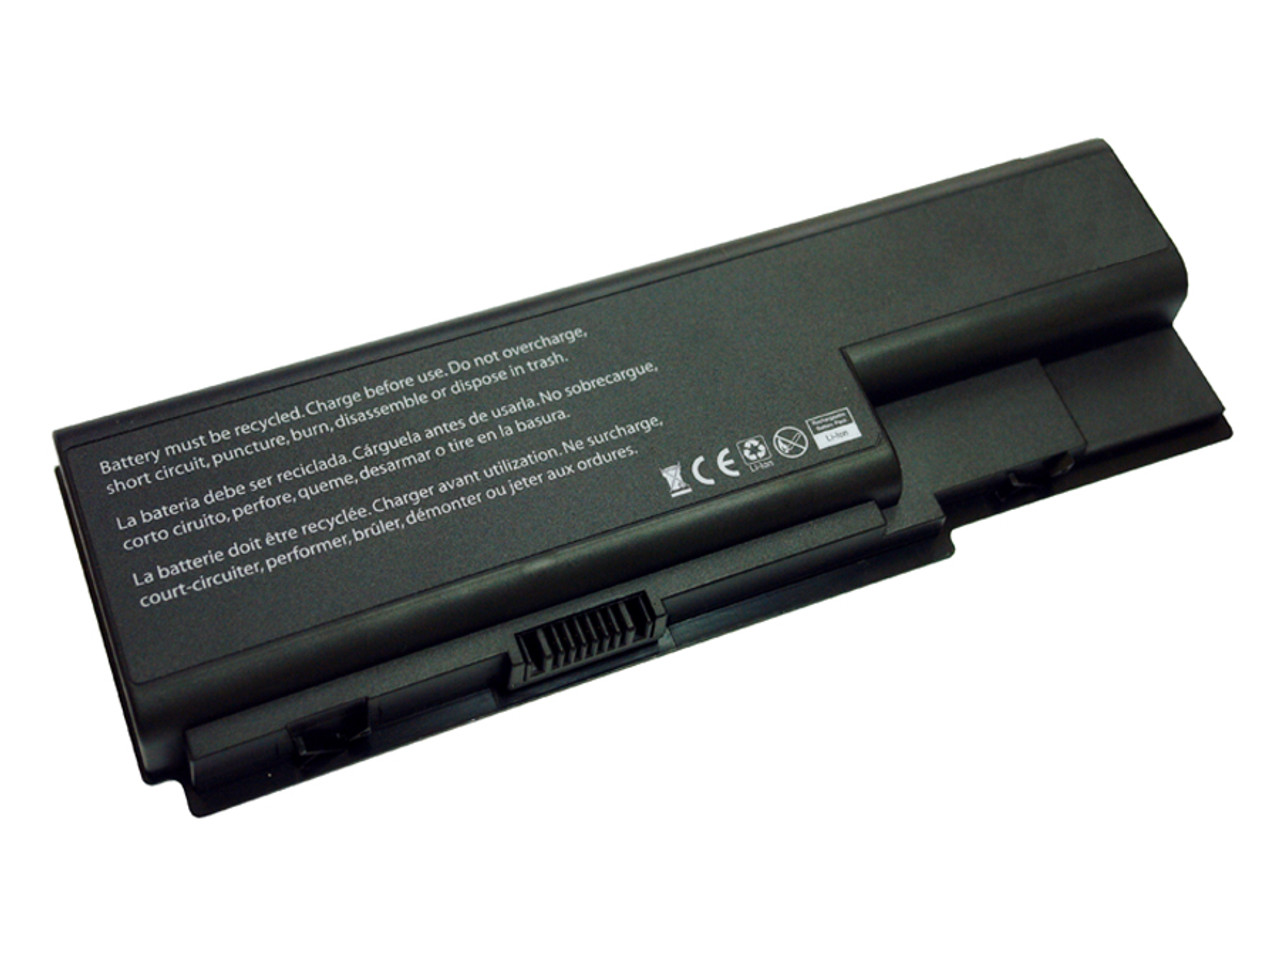 Acer Aspire 5520, 5710, 5720 6 cell battery